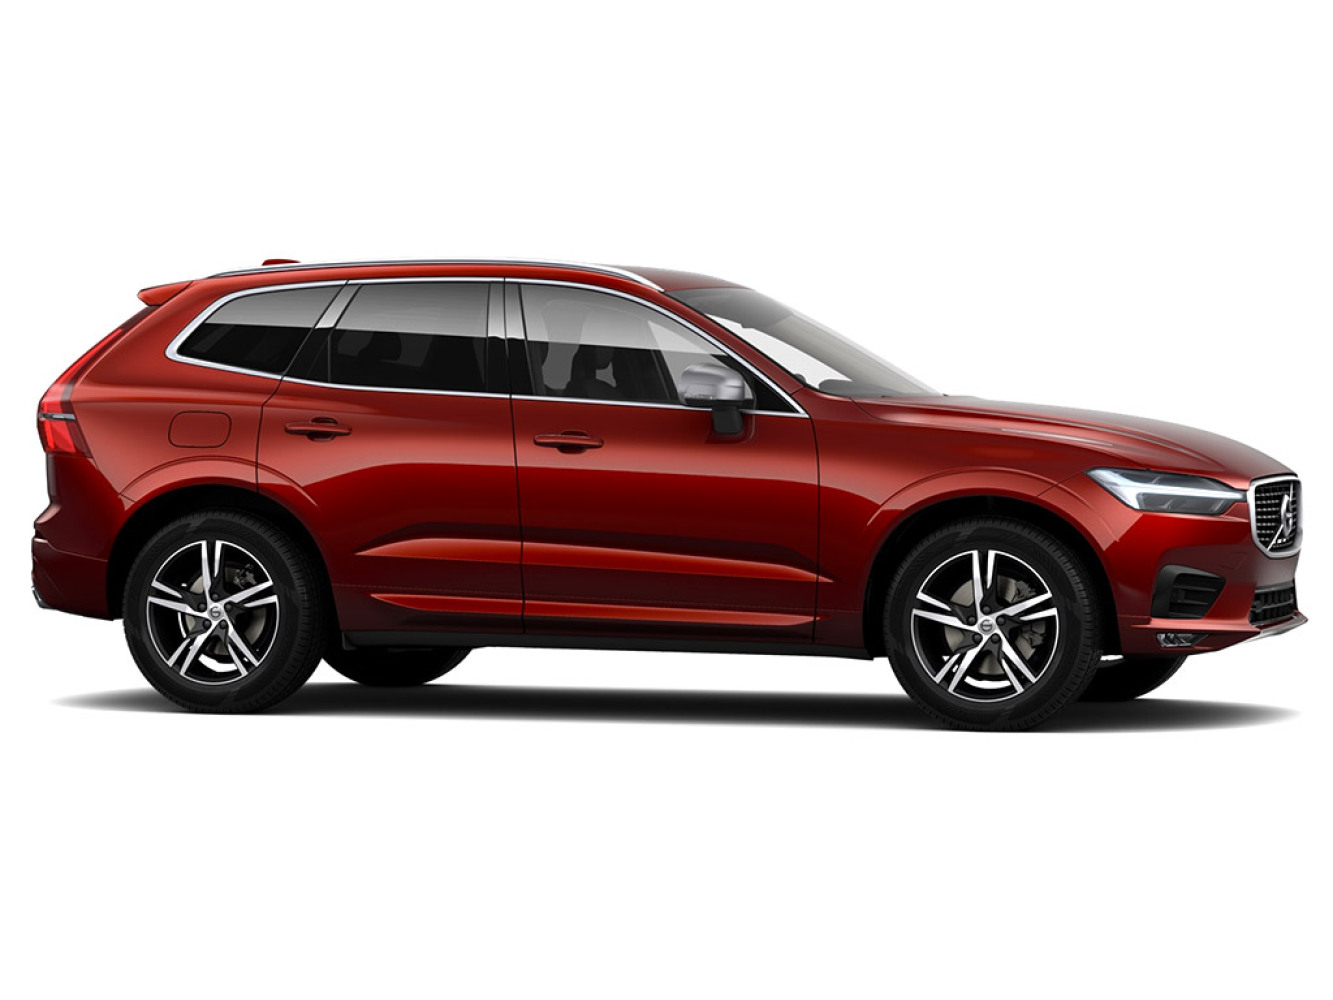 new volvo xc60 2 0 t5 250 r design 5dr awd geartronic. Black Bedroom Furniture Sets. Home Design Ideas